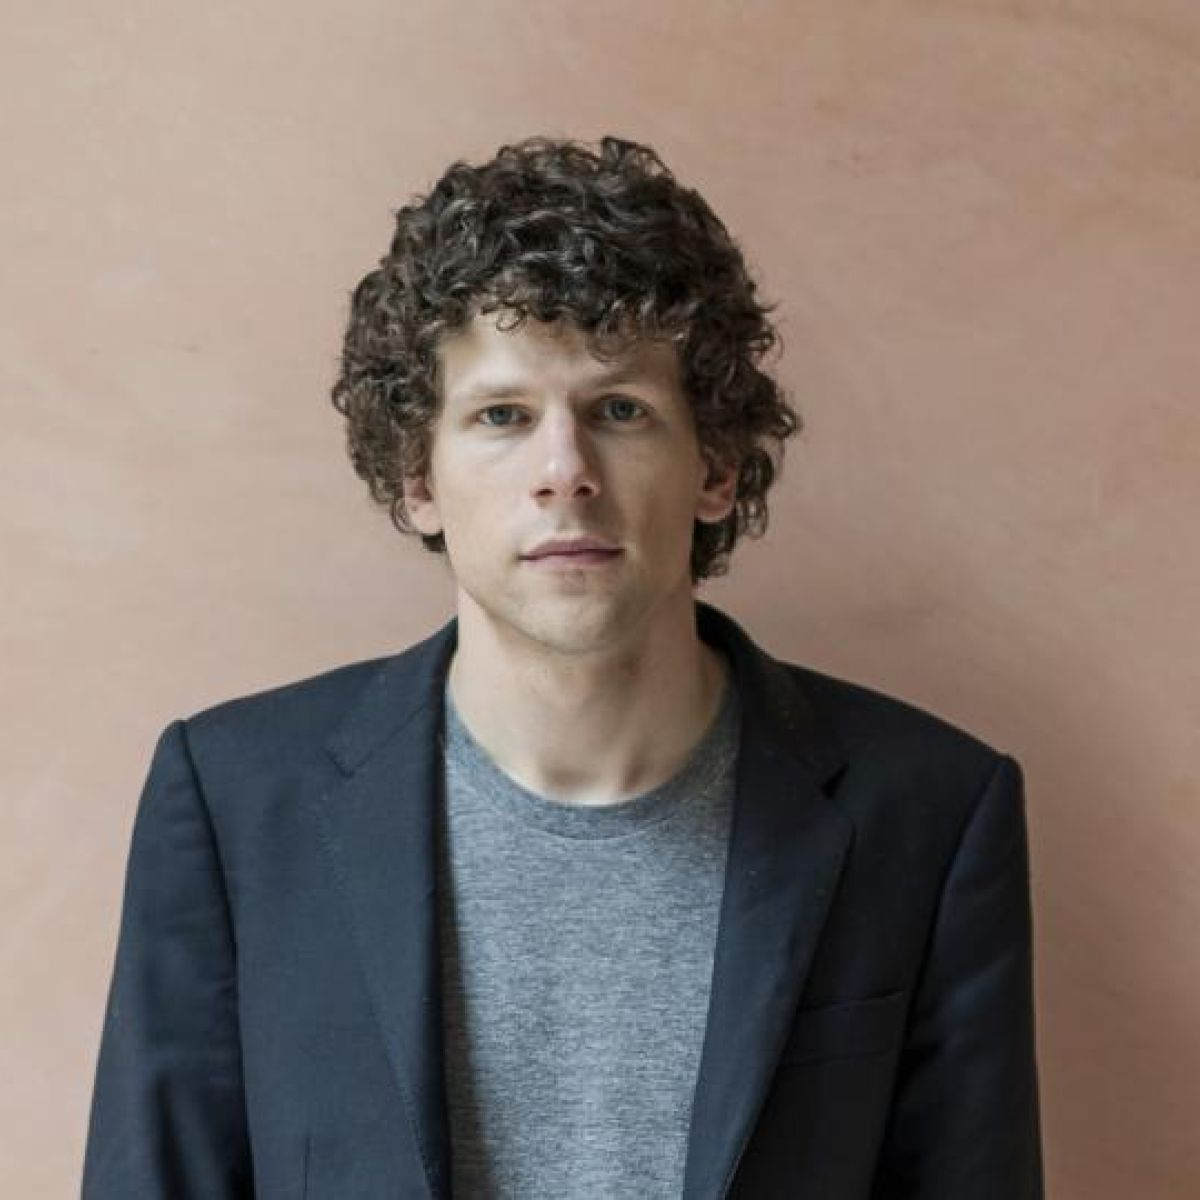 The Jesse Eisenberg Principle